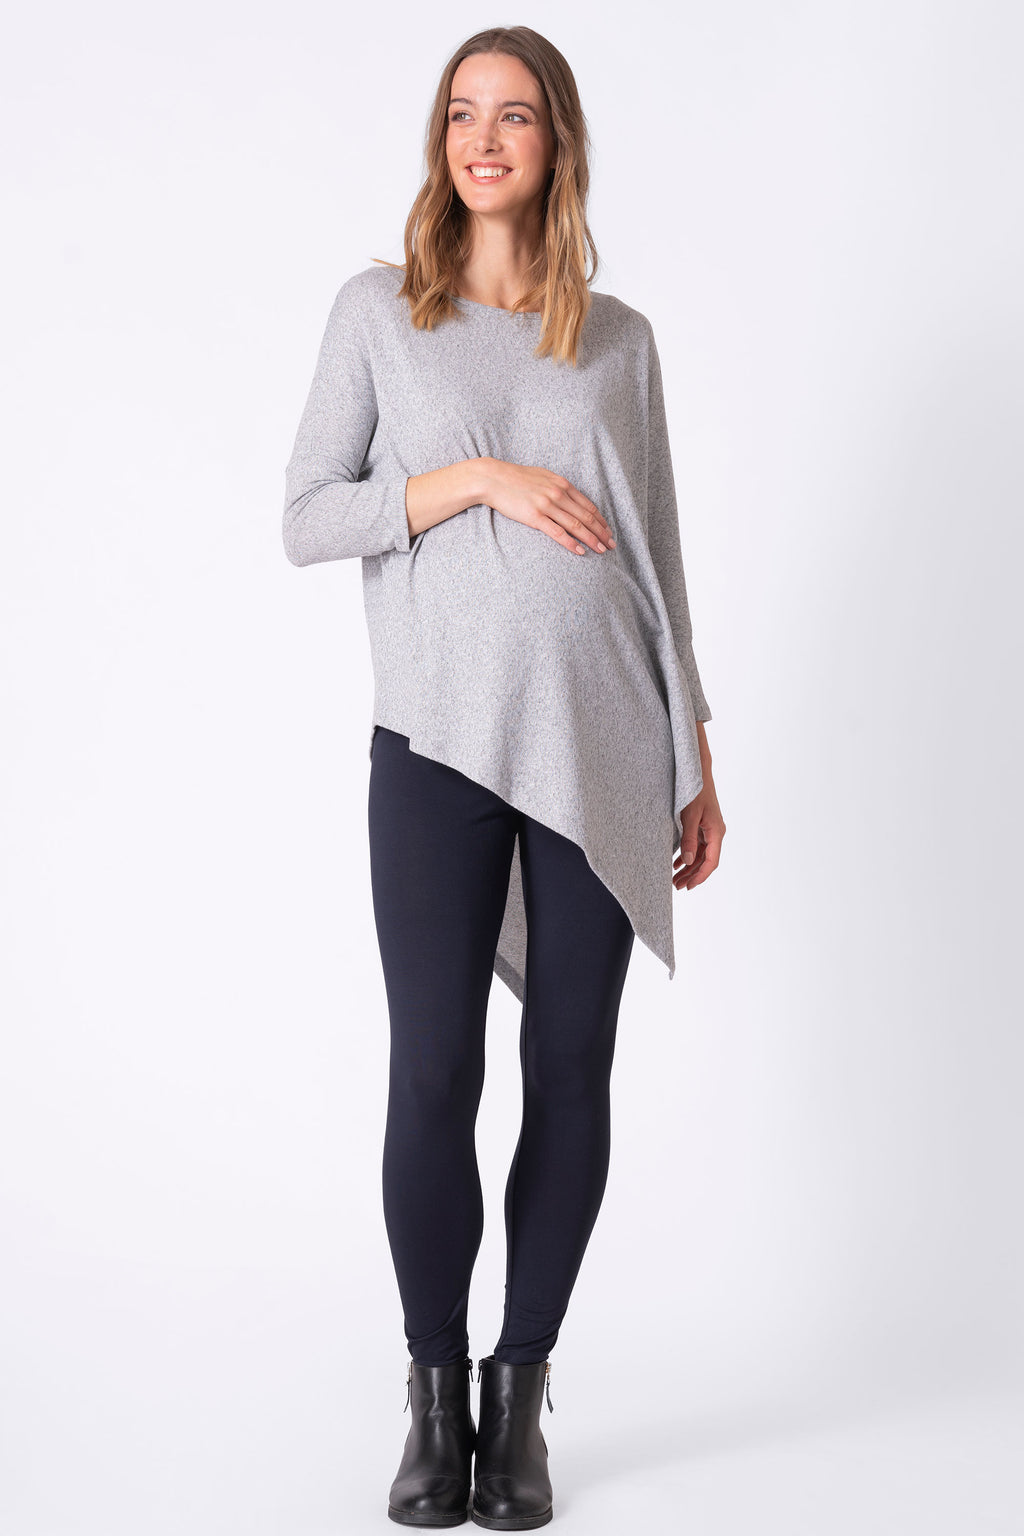 Skyla Ultra-Soft Asymmetric Maternity Poncho by Seraphine